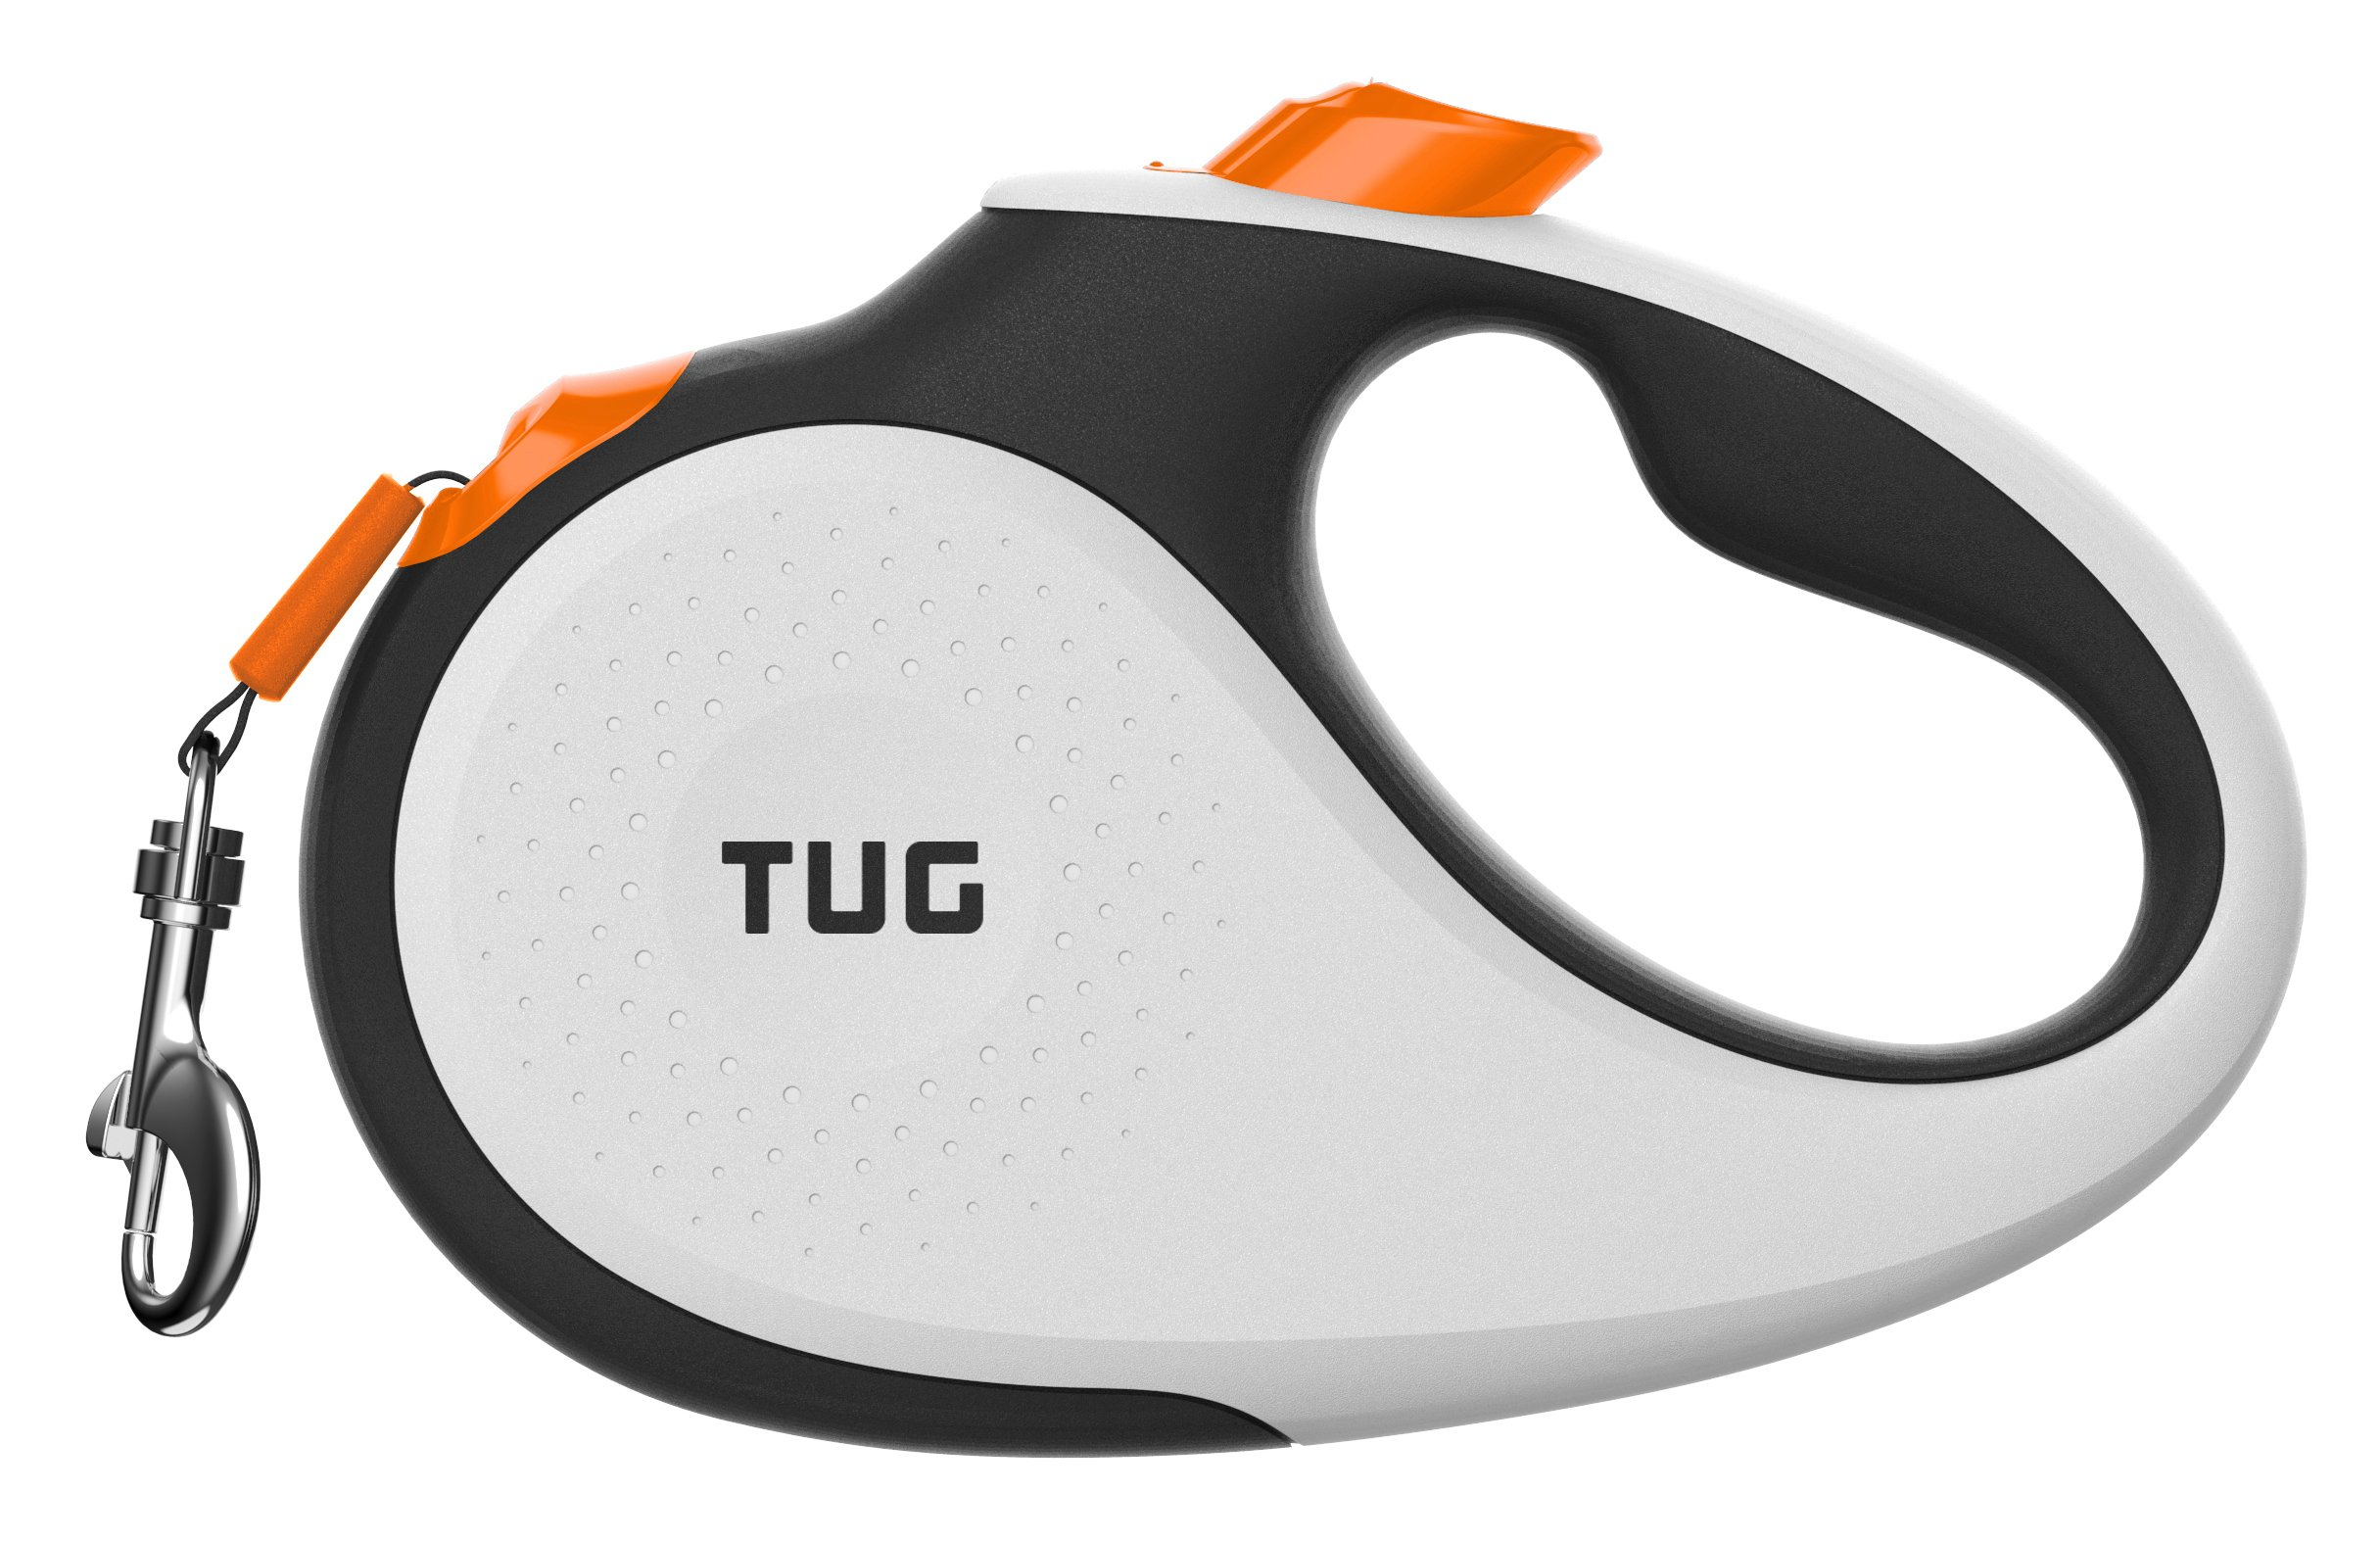 TUG Patented 360° Tangle-Free, Small Retractable Dog Leash with Anti-Slip Handle; 16 ft Strong Nylon Tape/Ribbon; One-Handed Brake, Pause, Lock (White/Orange)